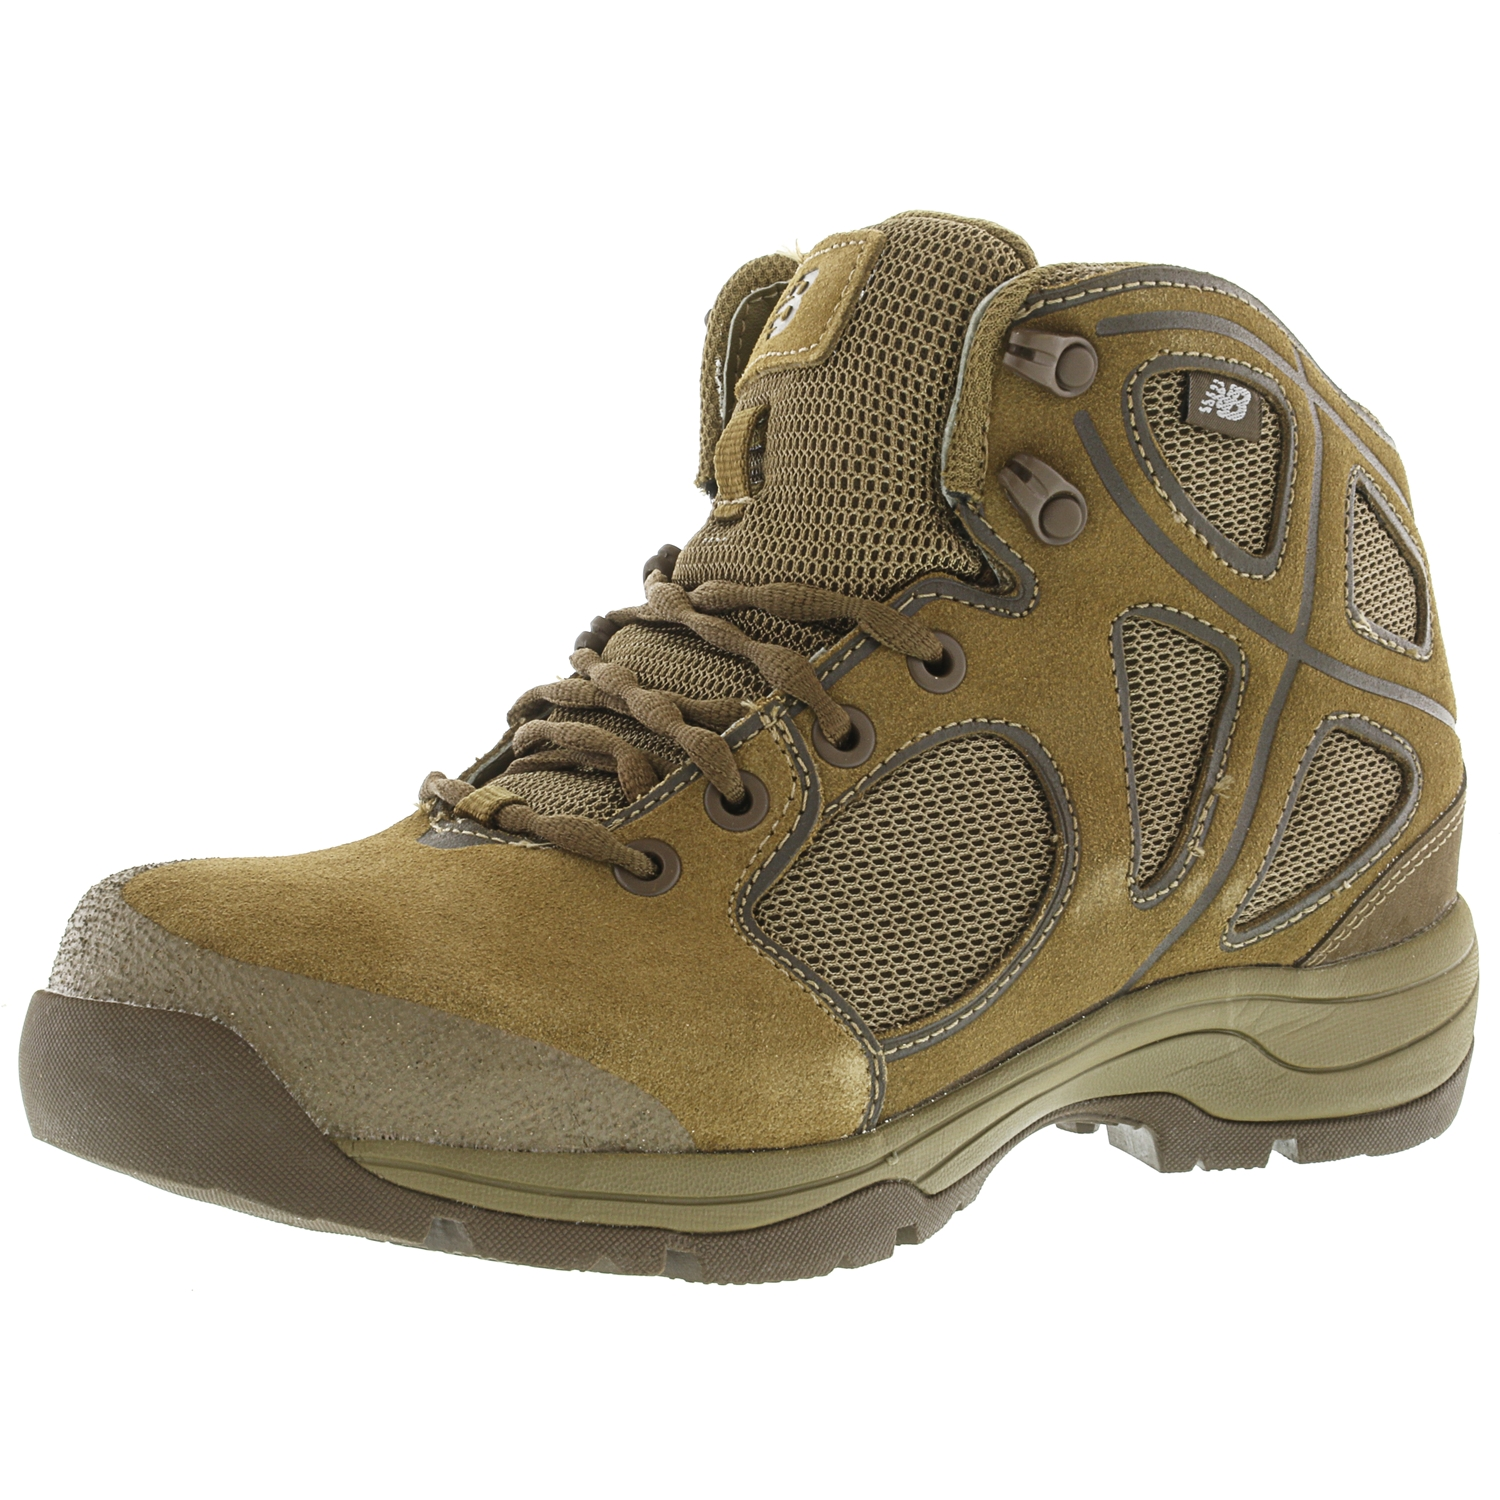 New Balance Men's Rappel Brown Ankle-High Fabric Hiking Boot - 7.5W